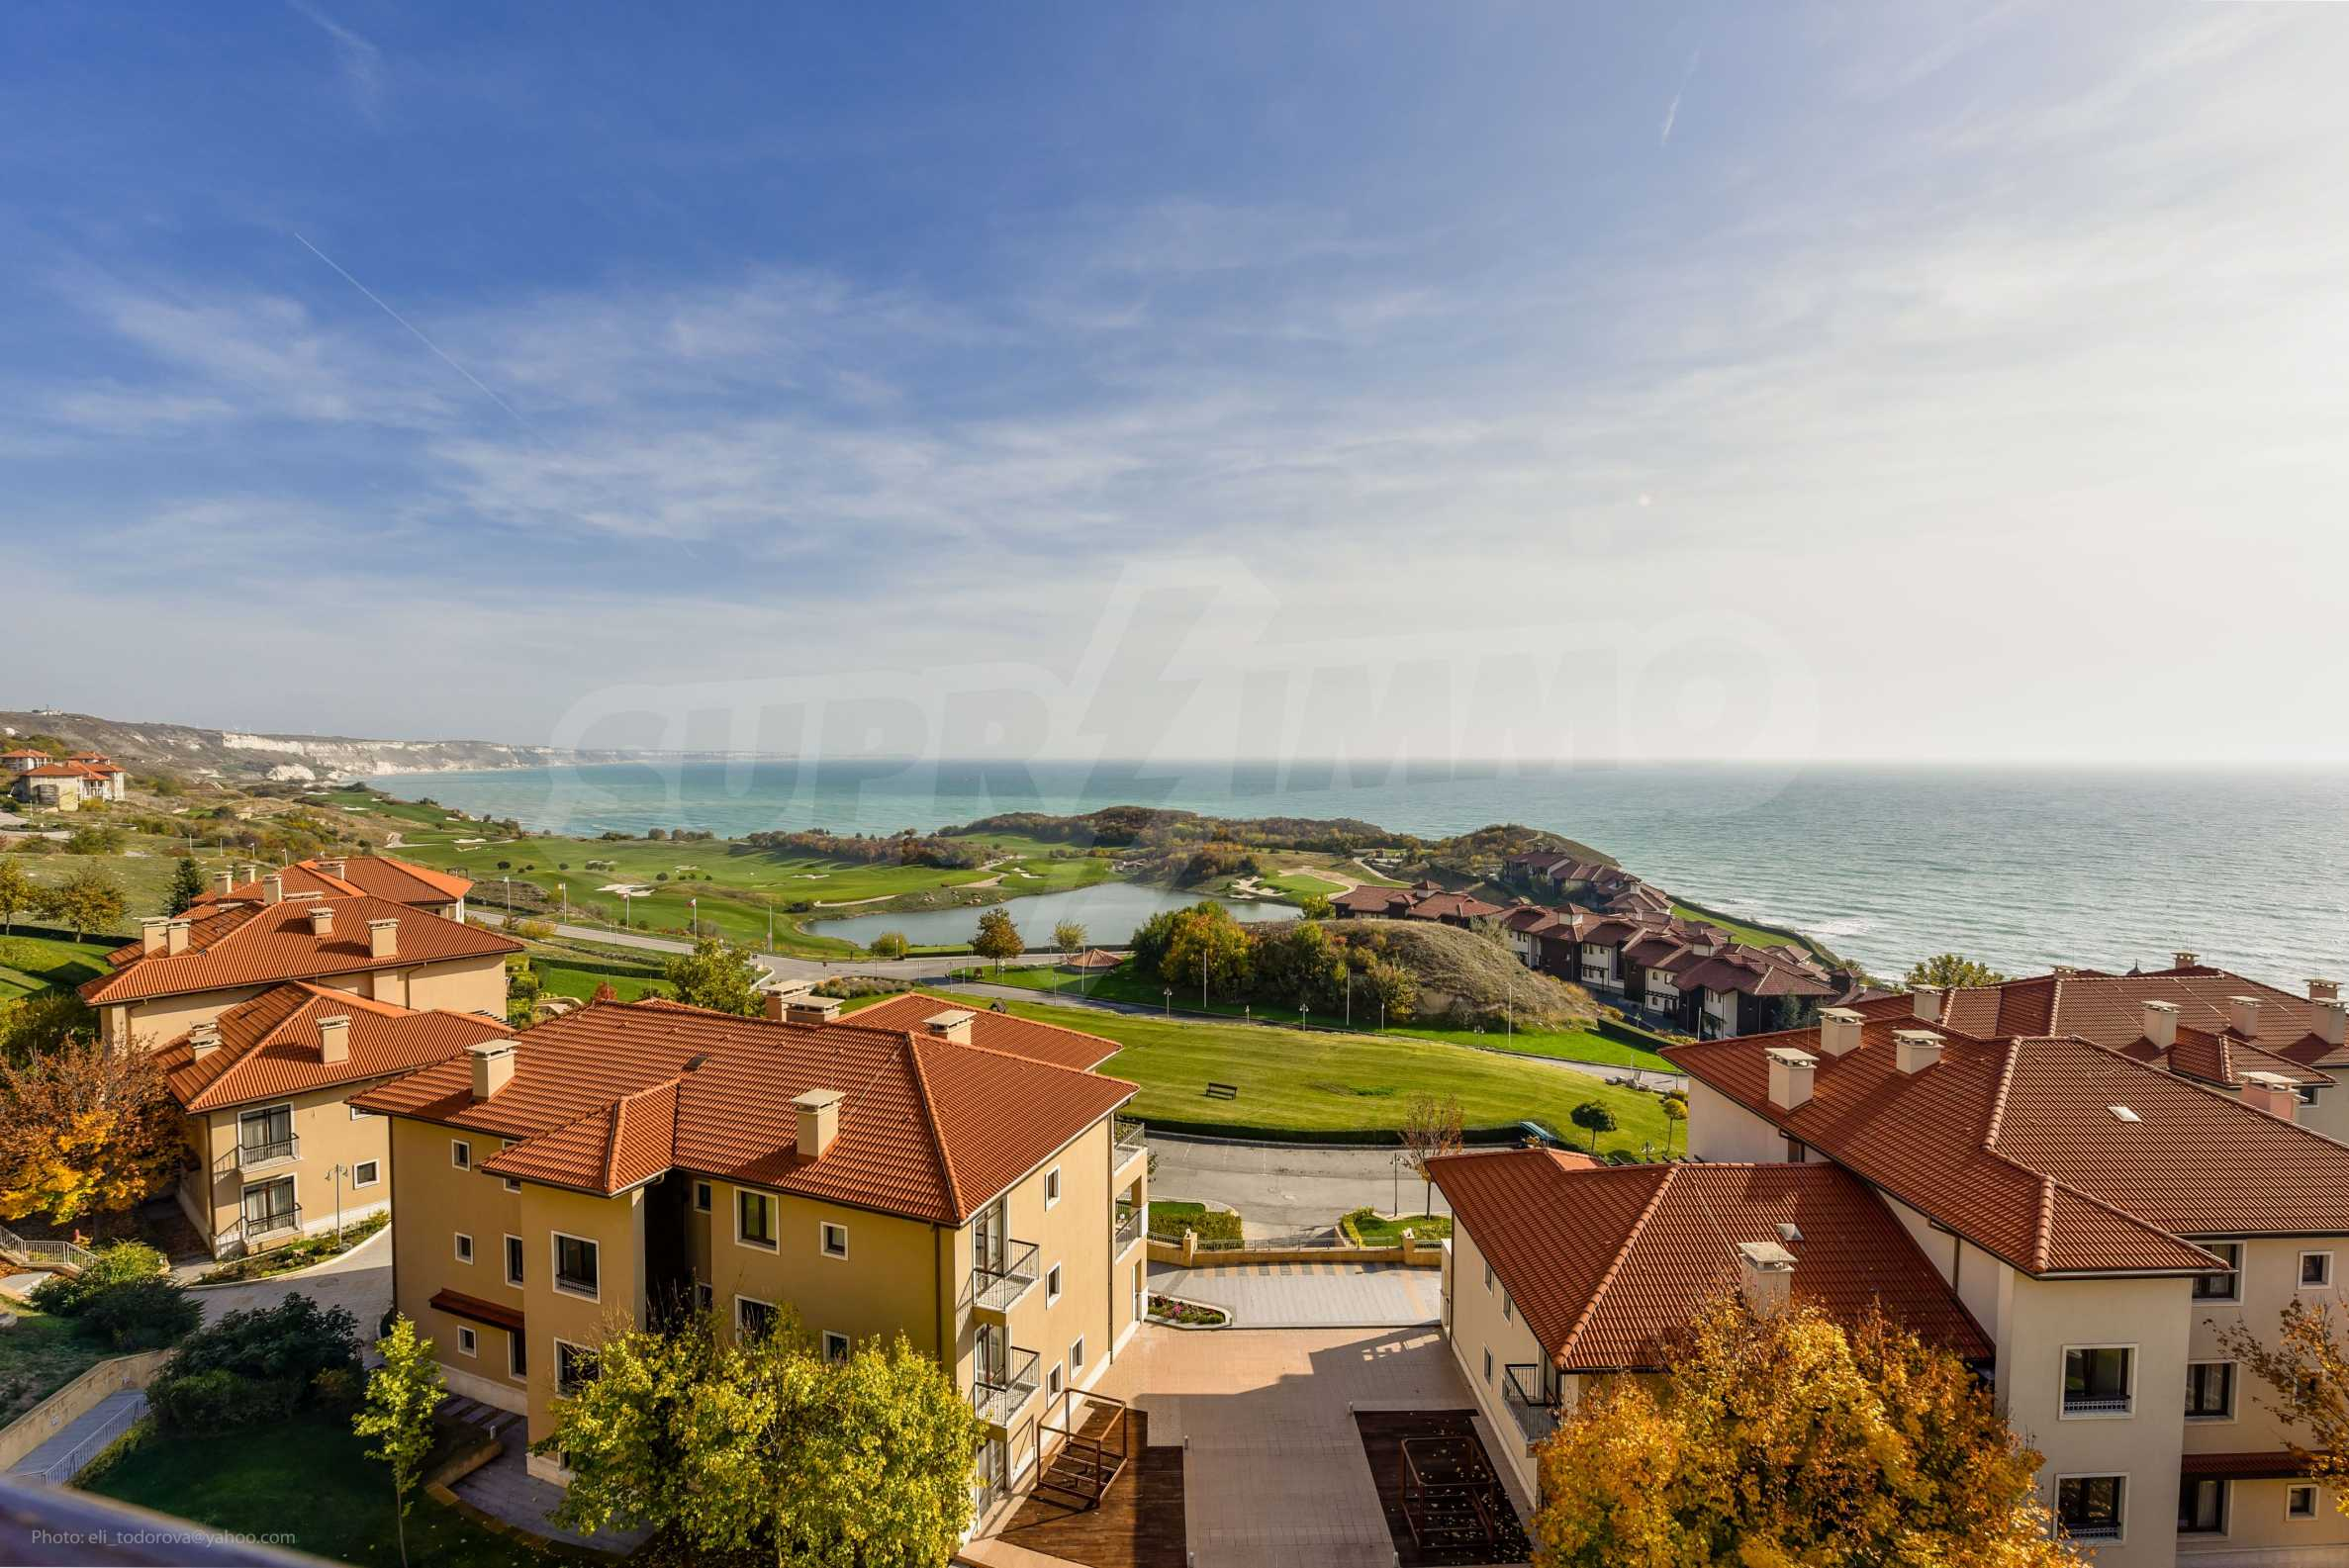 Thracian Cliffs Golf & Beach Resort - a world class golf resort 1